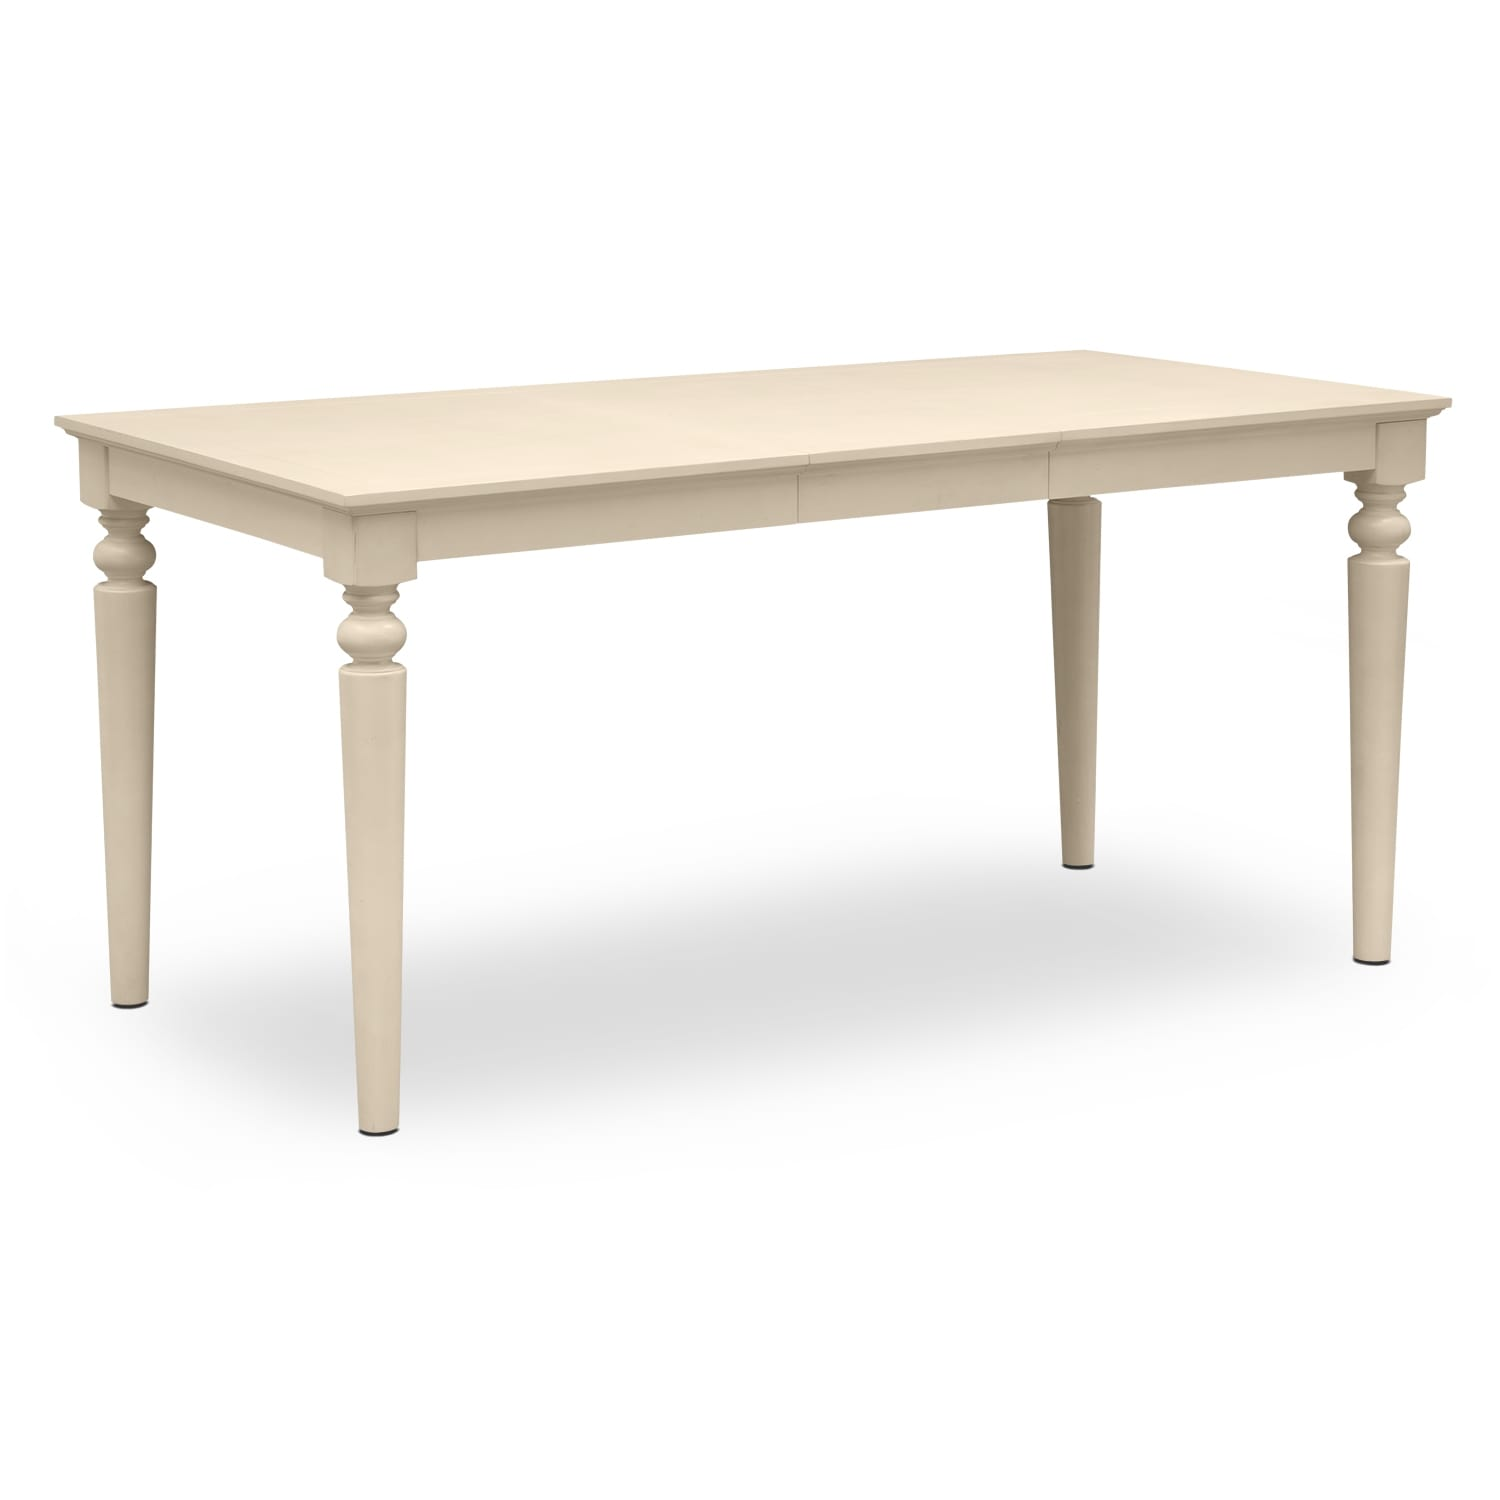 Carnival white ii dining room counter height table value for Tall dining table